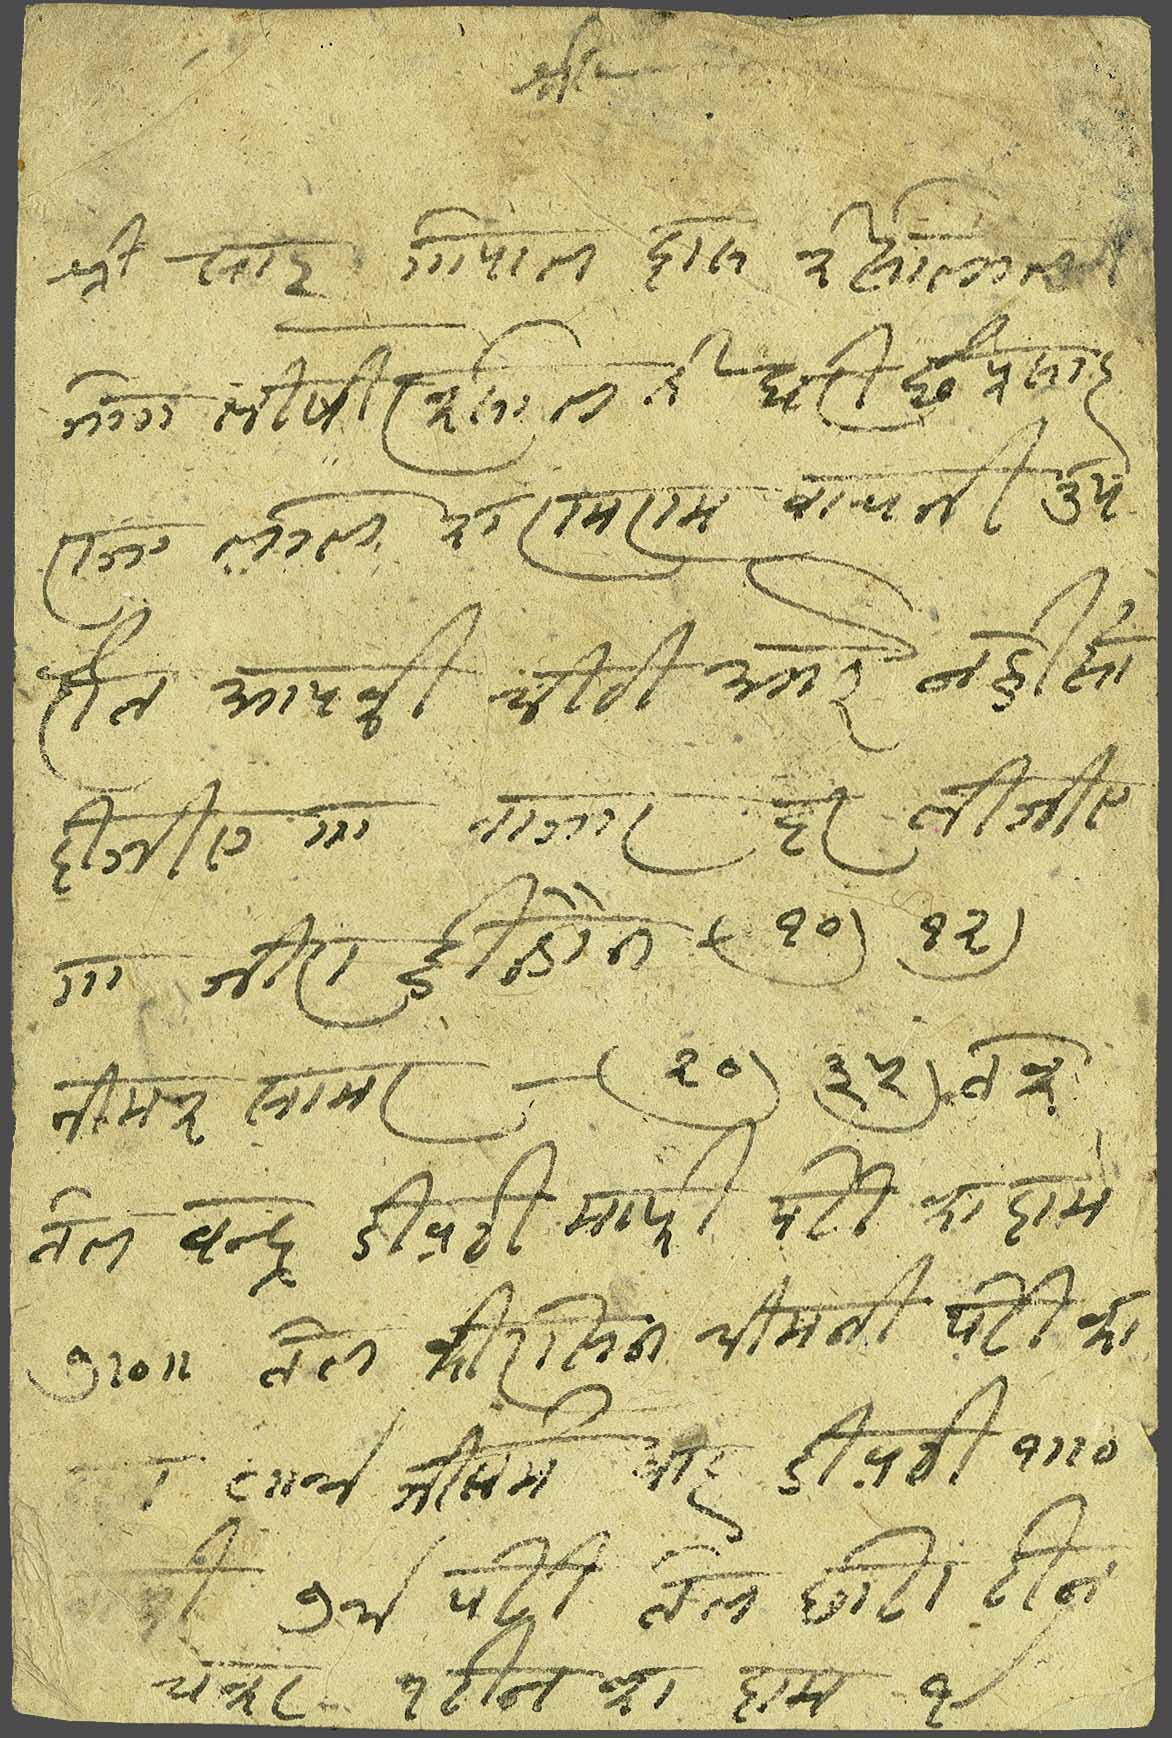 Lot 51 - Great Britain and former colonies Nepal -  Corinphila Veilingen Auction 245-246 Day 1 - Nepal - The Dick van der Wateren Collection, Foreign countries - Single lots, Picture postcards